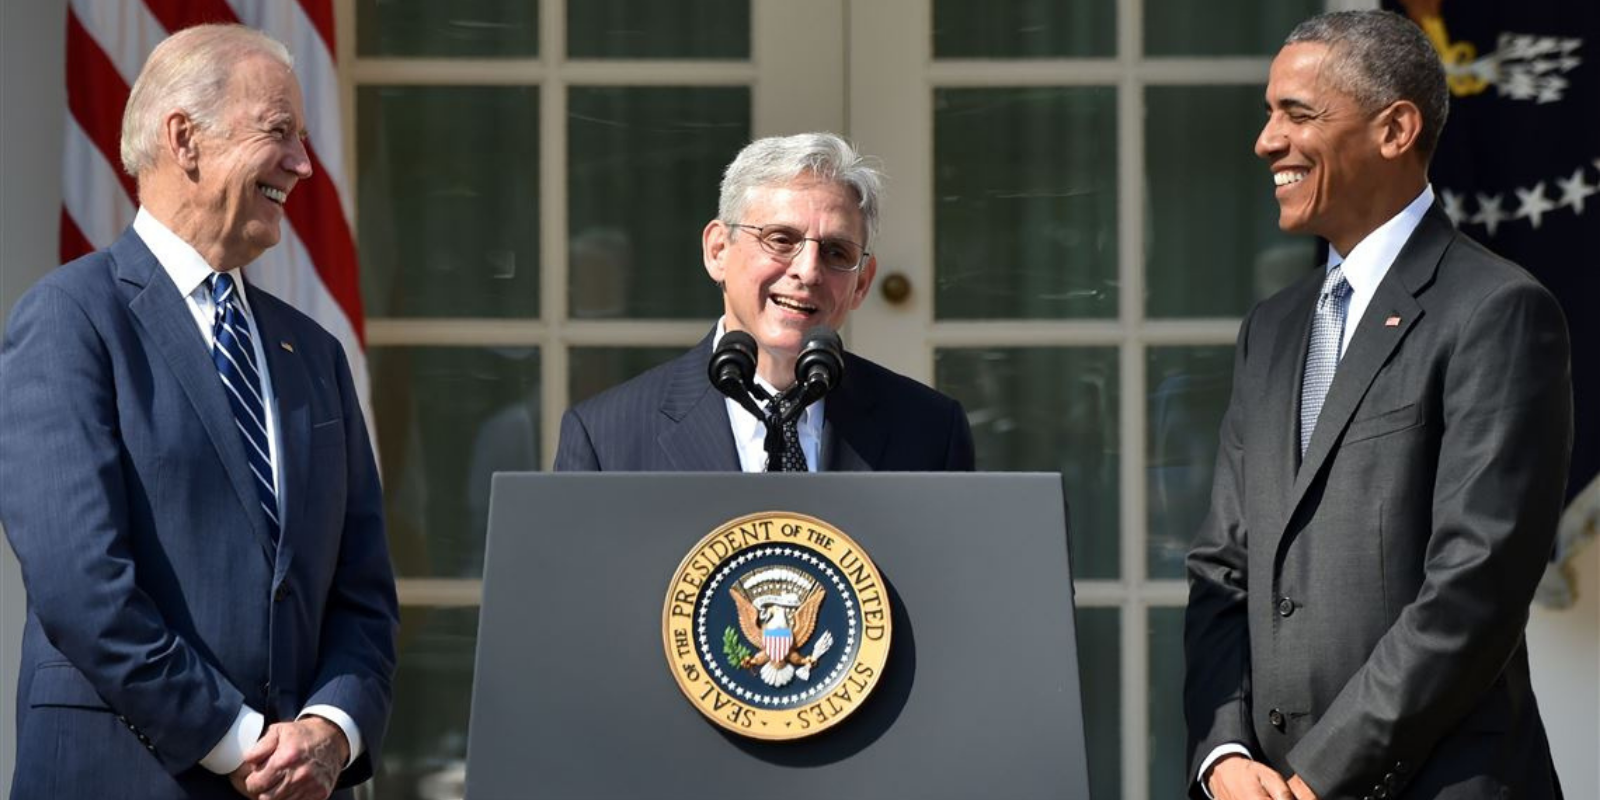 BREAKING: Merrick Garland to be named AG by Biden administration